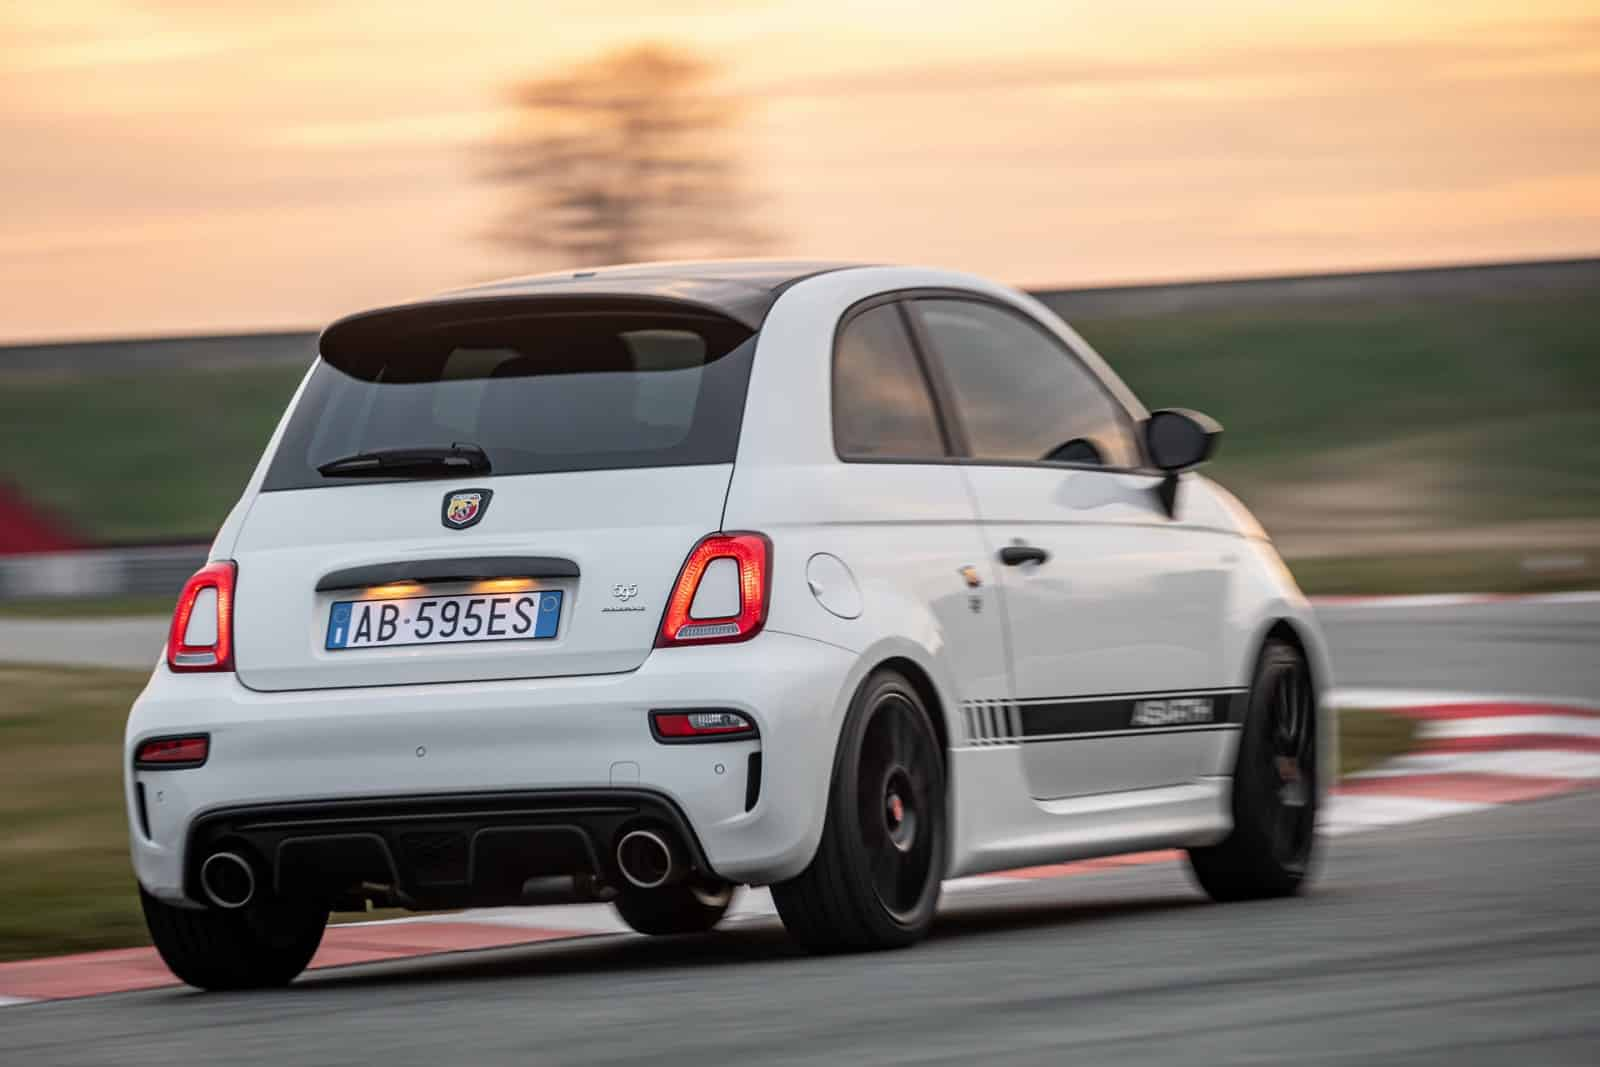 This is the Abarth 2021 range: No major changes